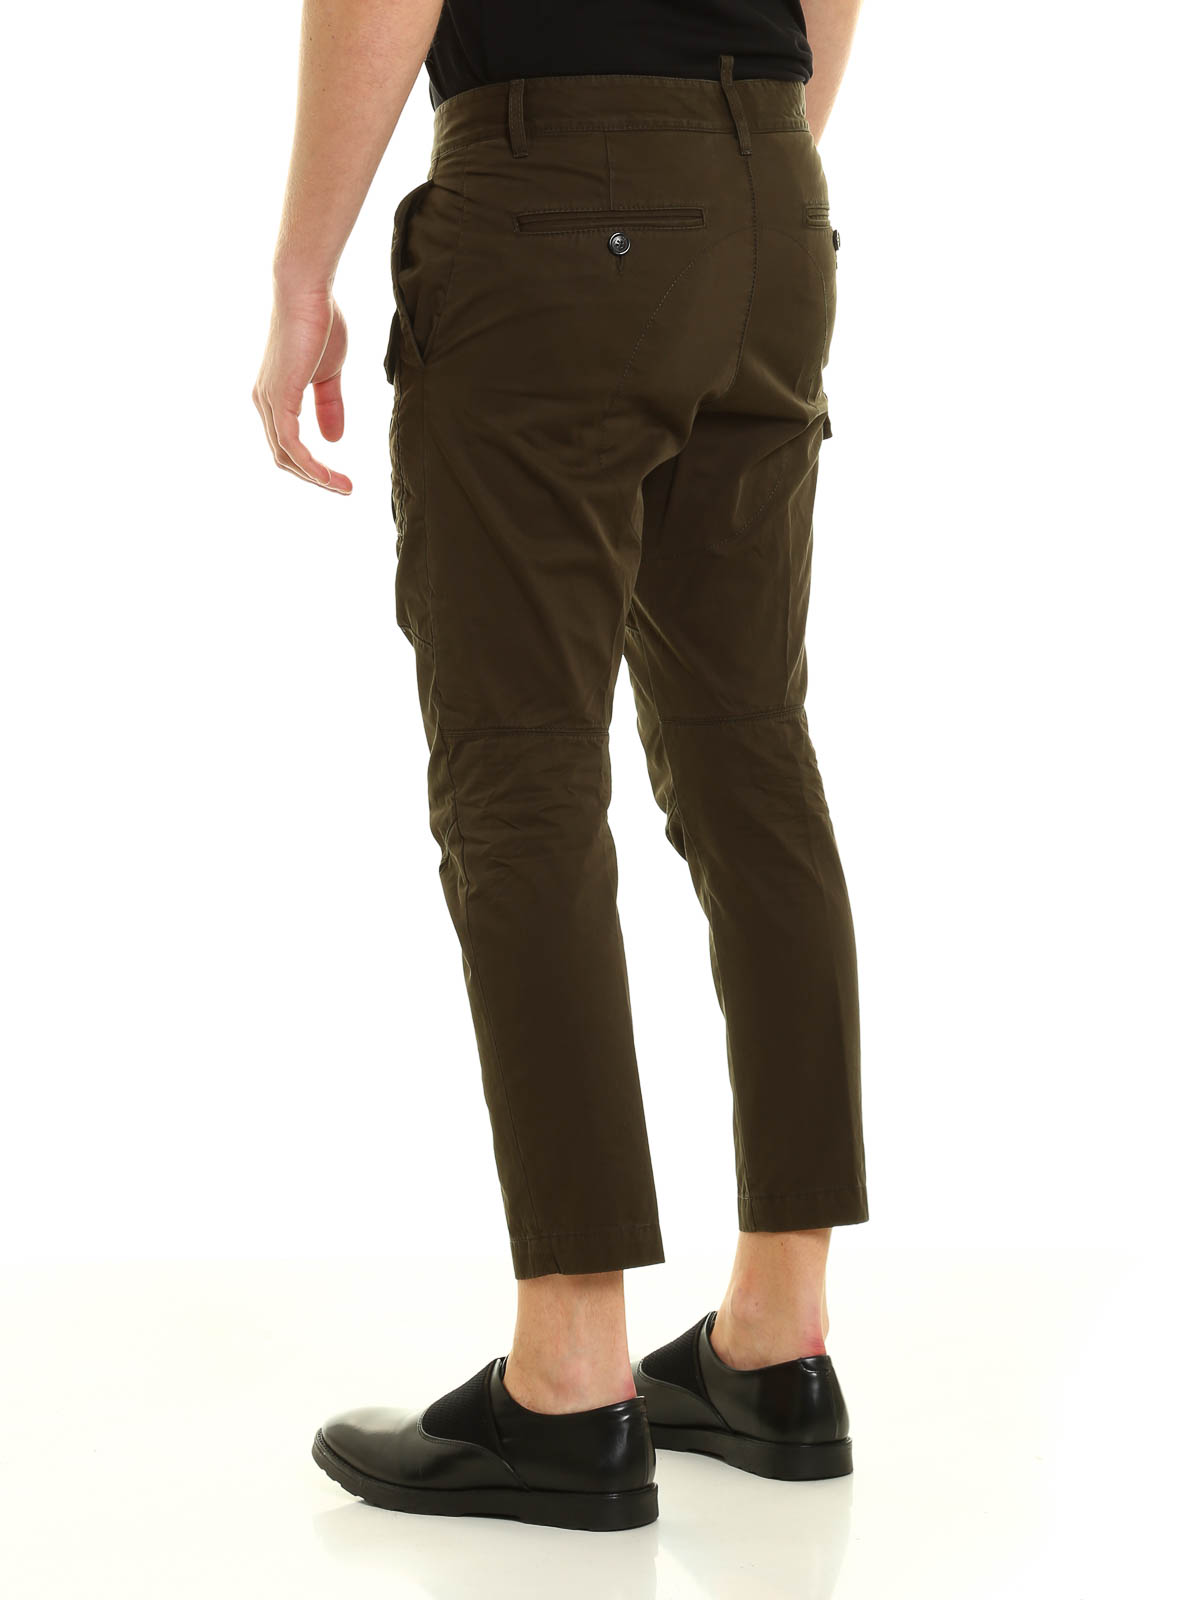 Limited Edition Sale Online Cheapest Cargo trousers in green cotton gabardine Dsquared2 ZWq5kfYz7o